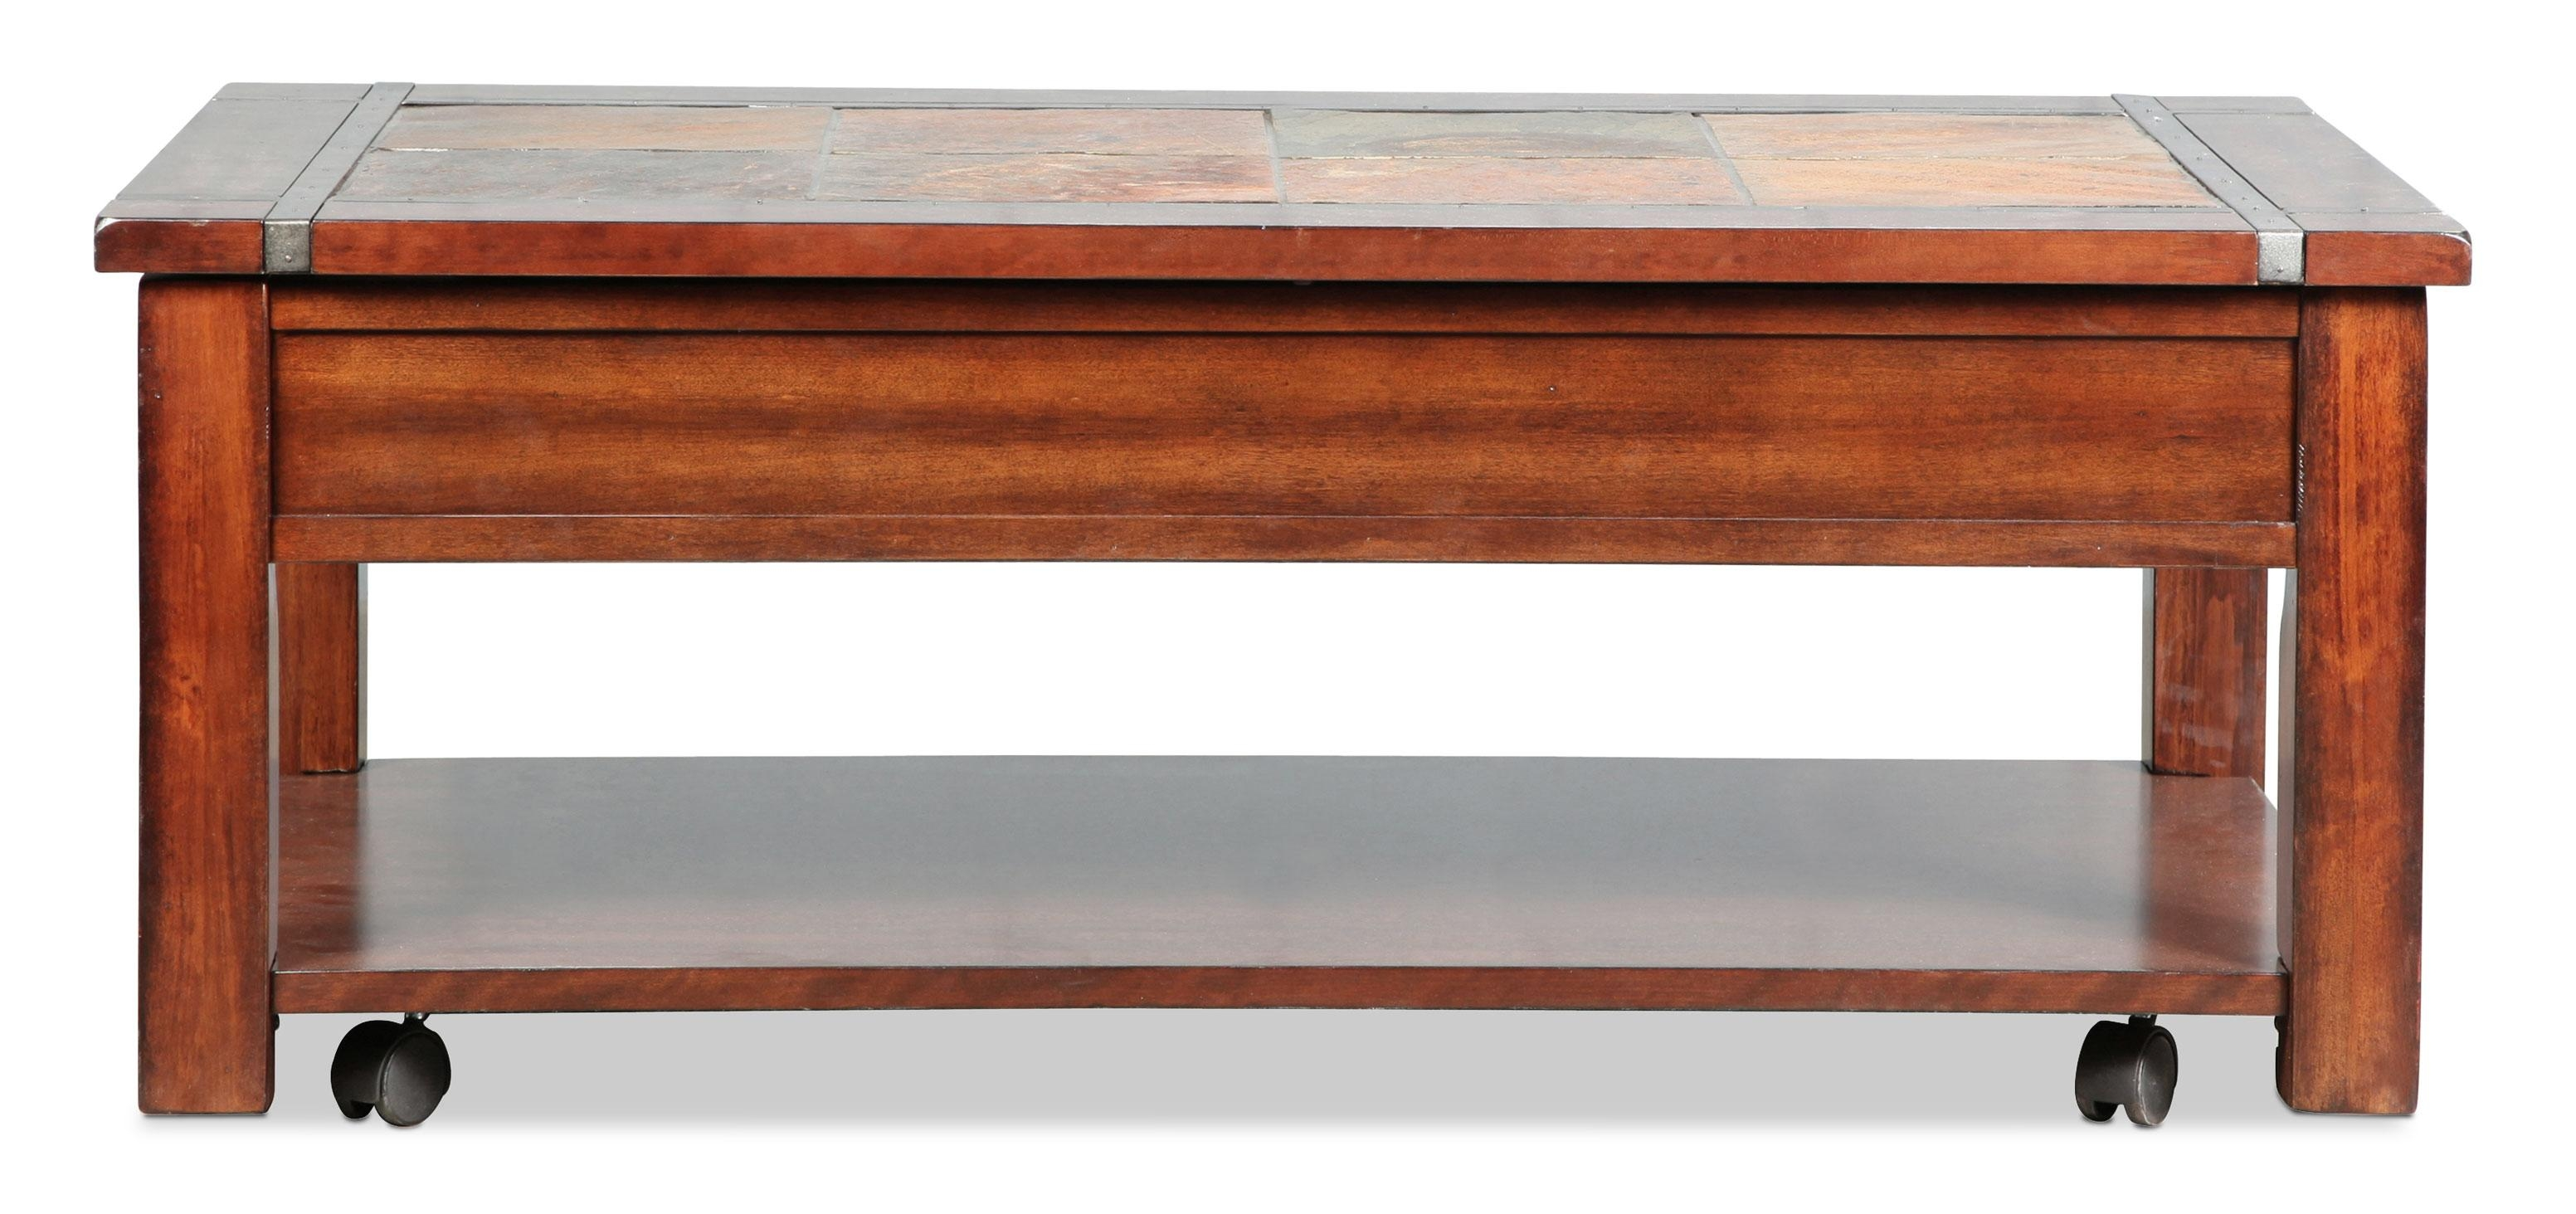 Roanoke Lift Top Coffee Table – Slate And Cherry | Levin Furniture Pertaining To Slate Sofa Tables (Image 5 of 20)